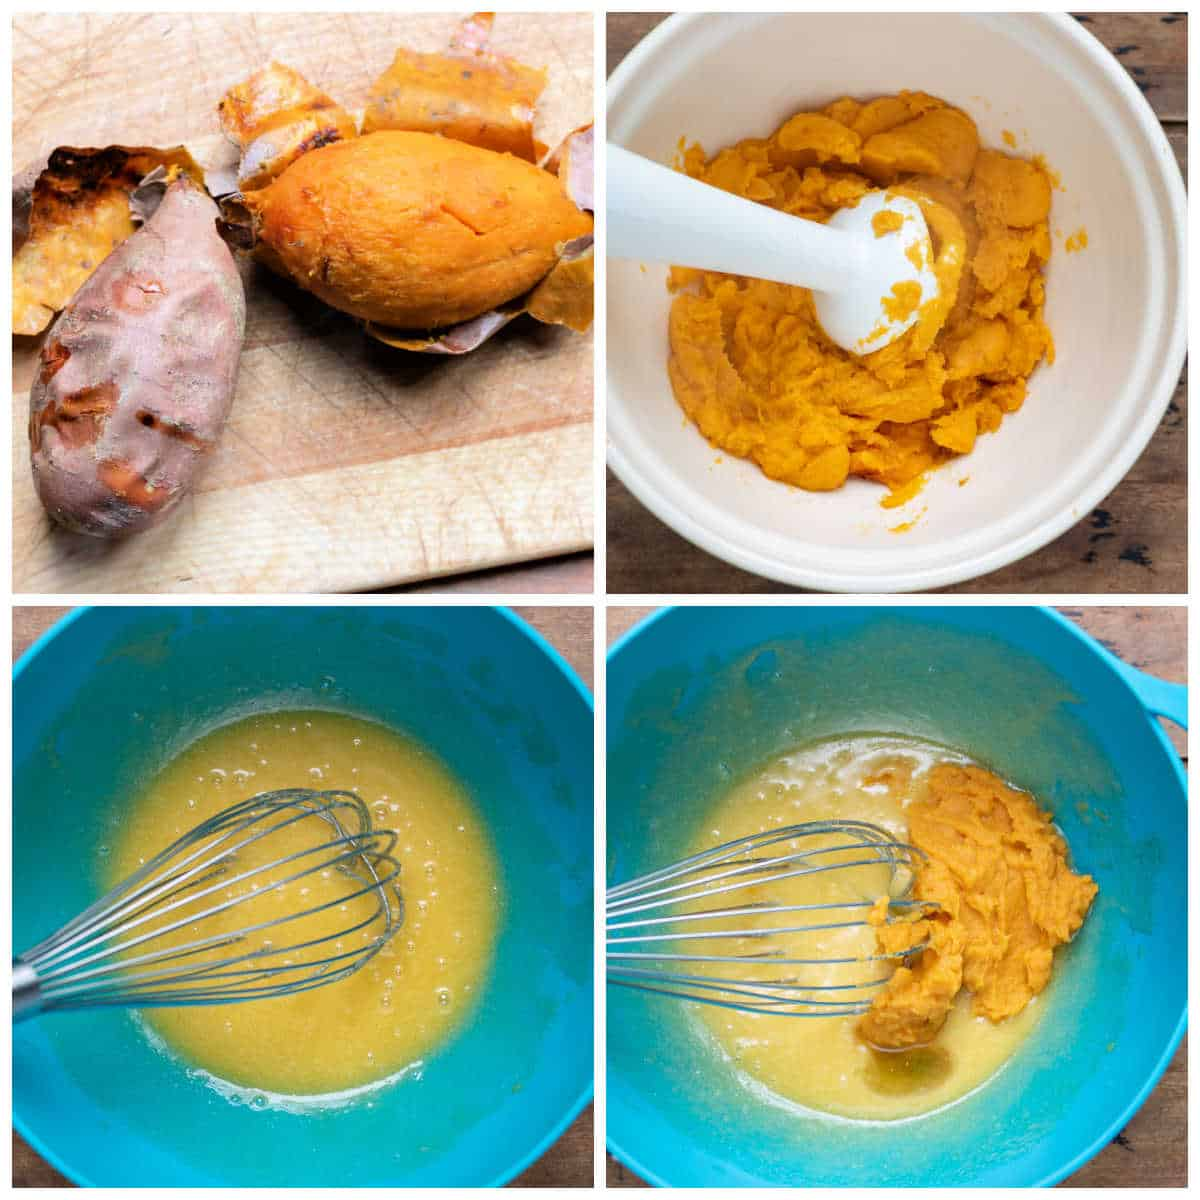 Collage of making cookies - baked sweet potato, pureed, butter and sugars beaten, puree added.